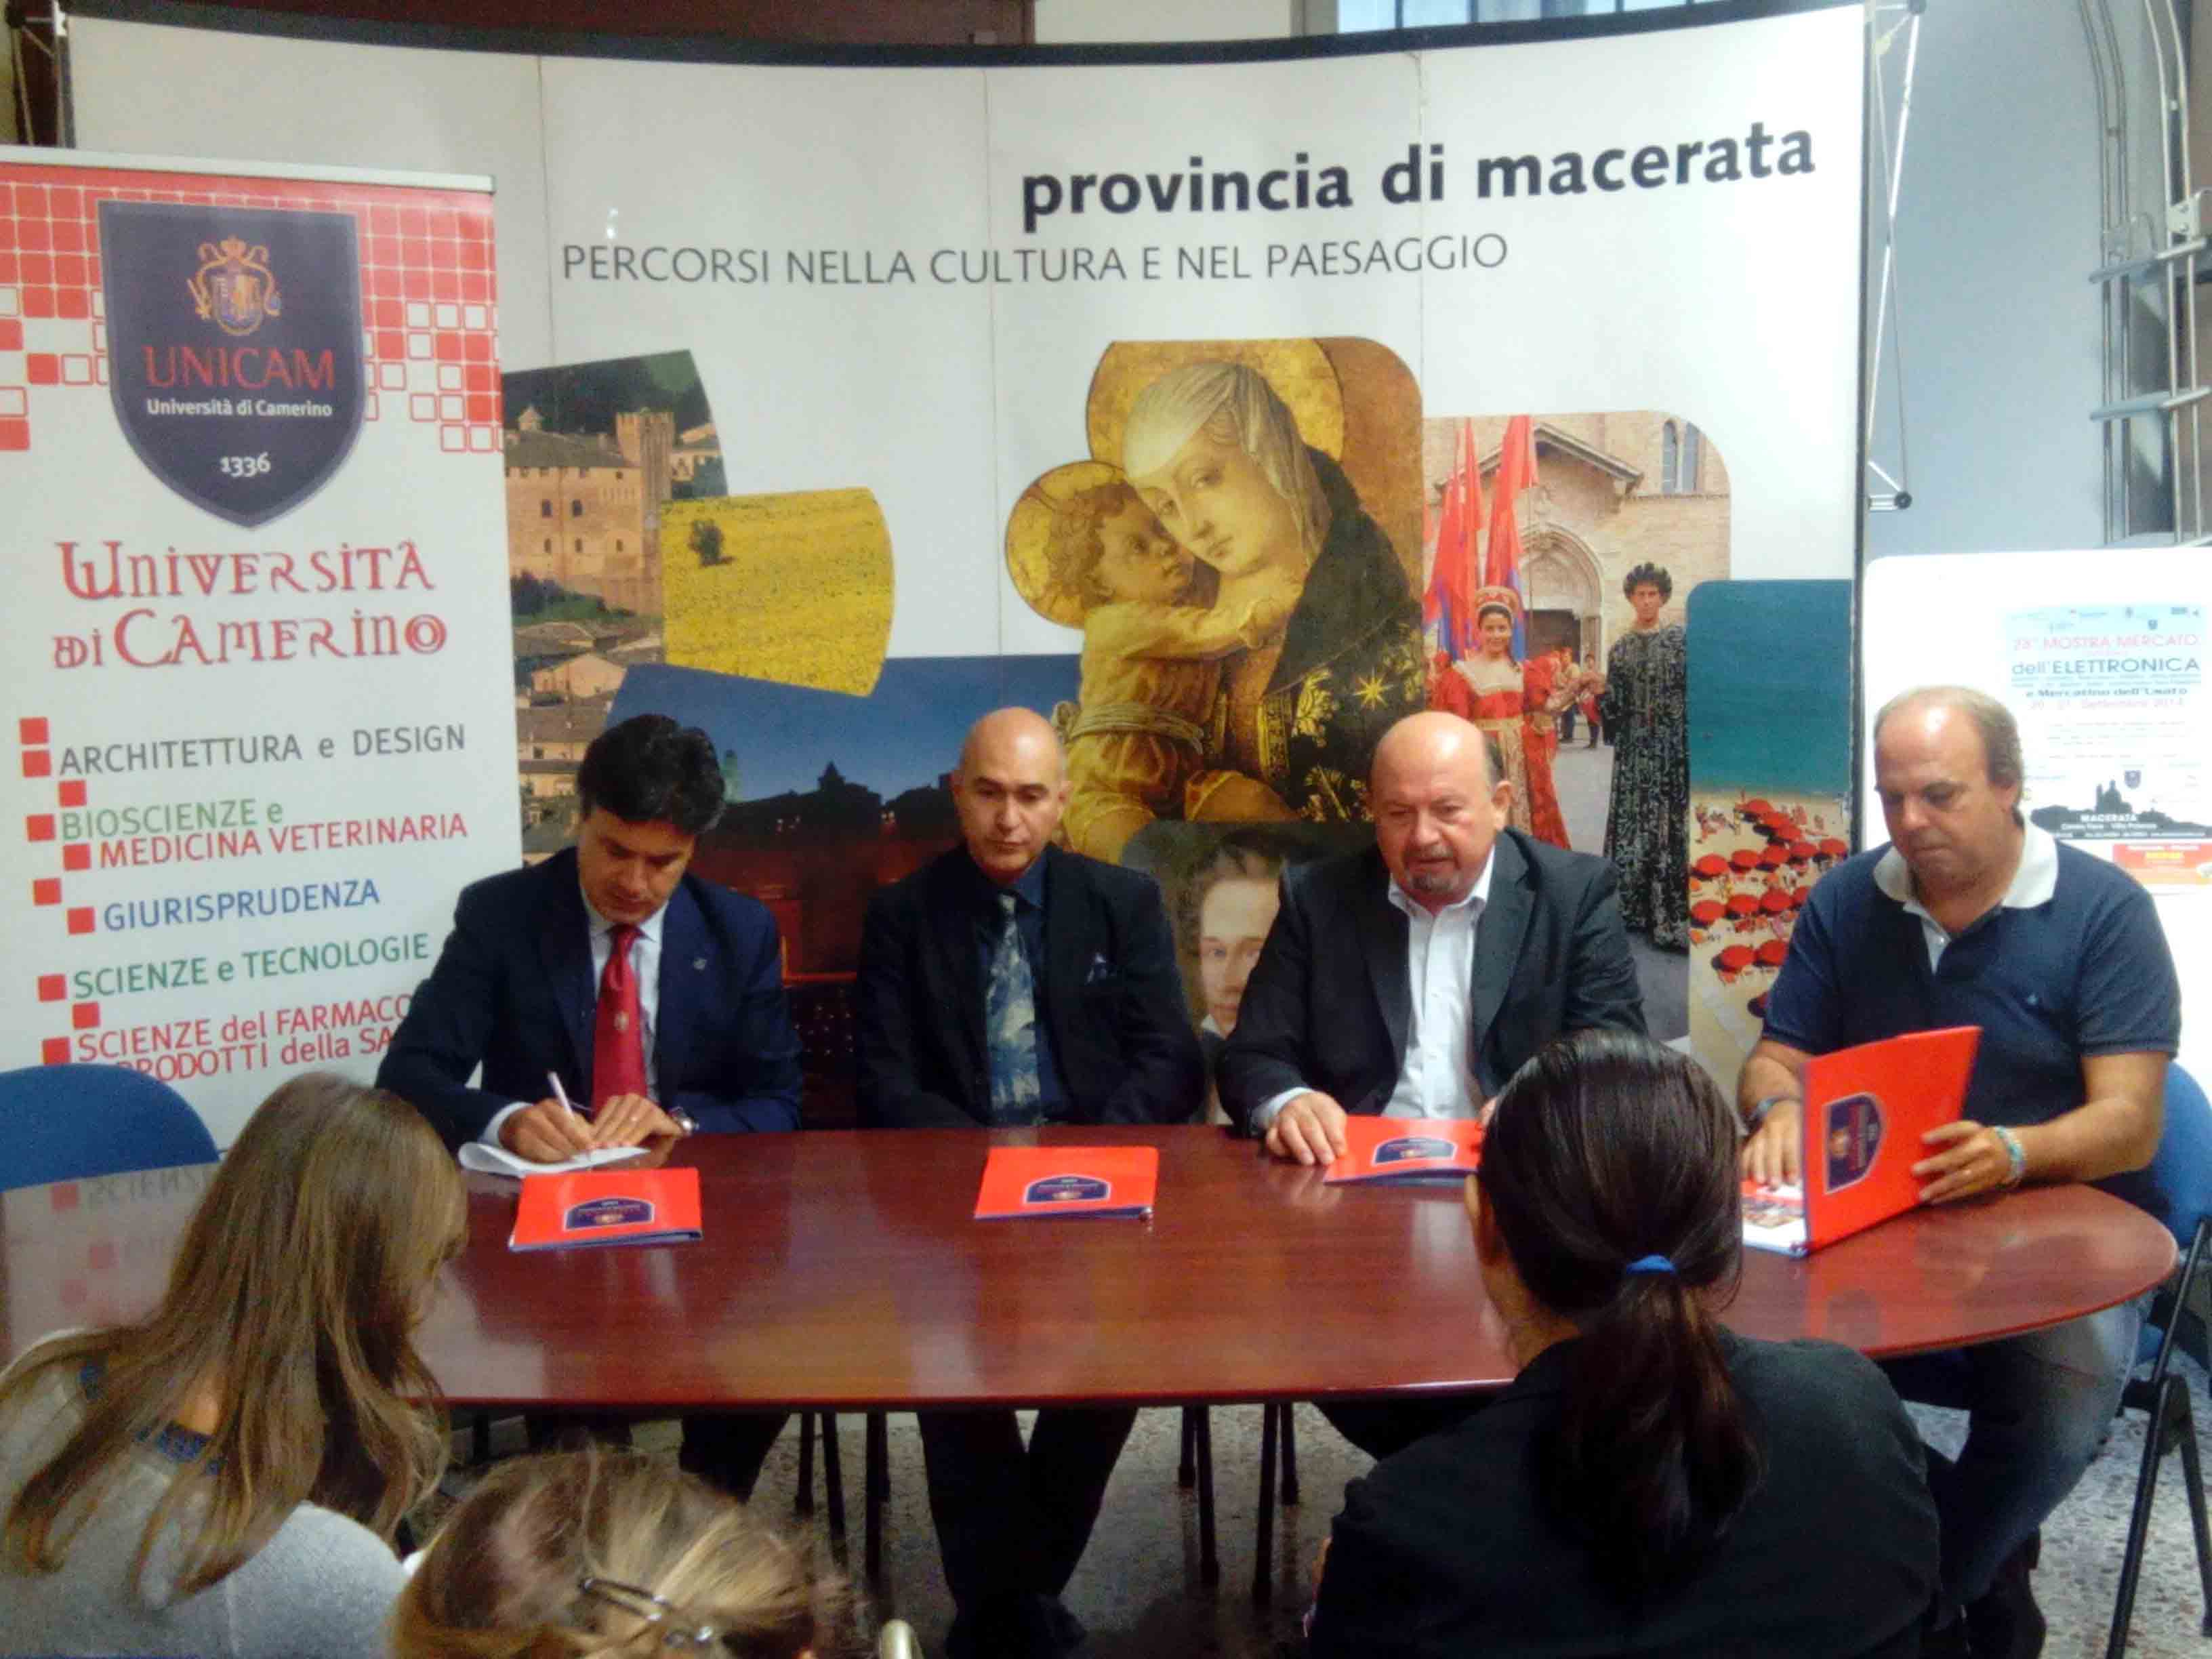 conferenza stampa fiera elettronica macerata 2014